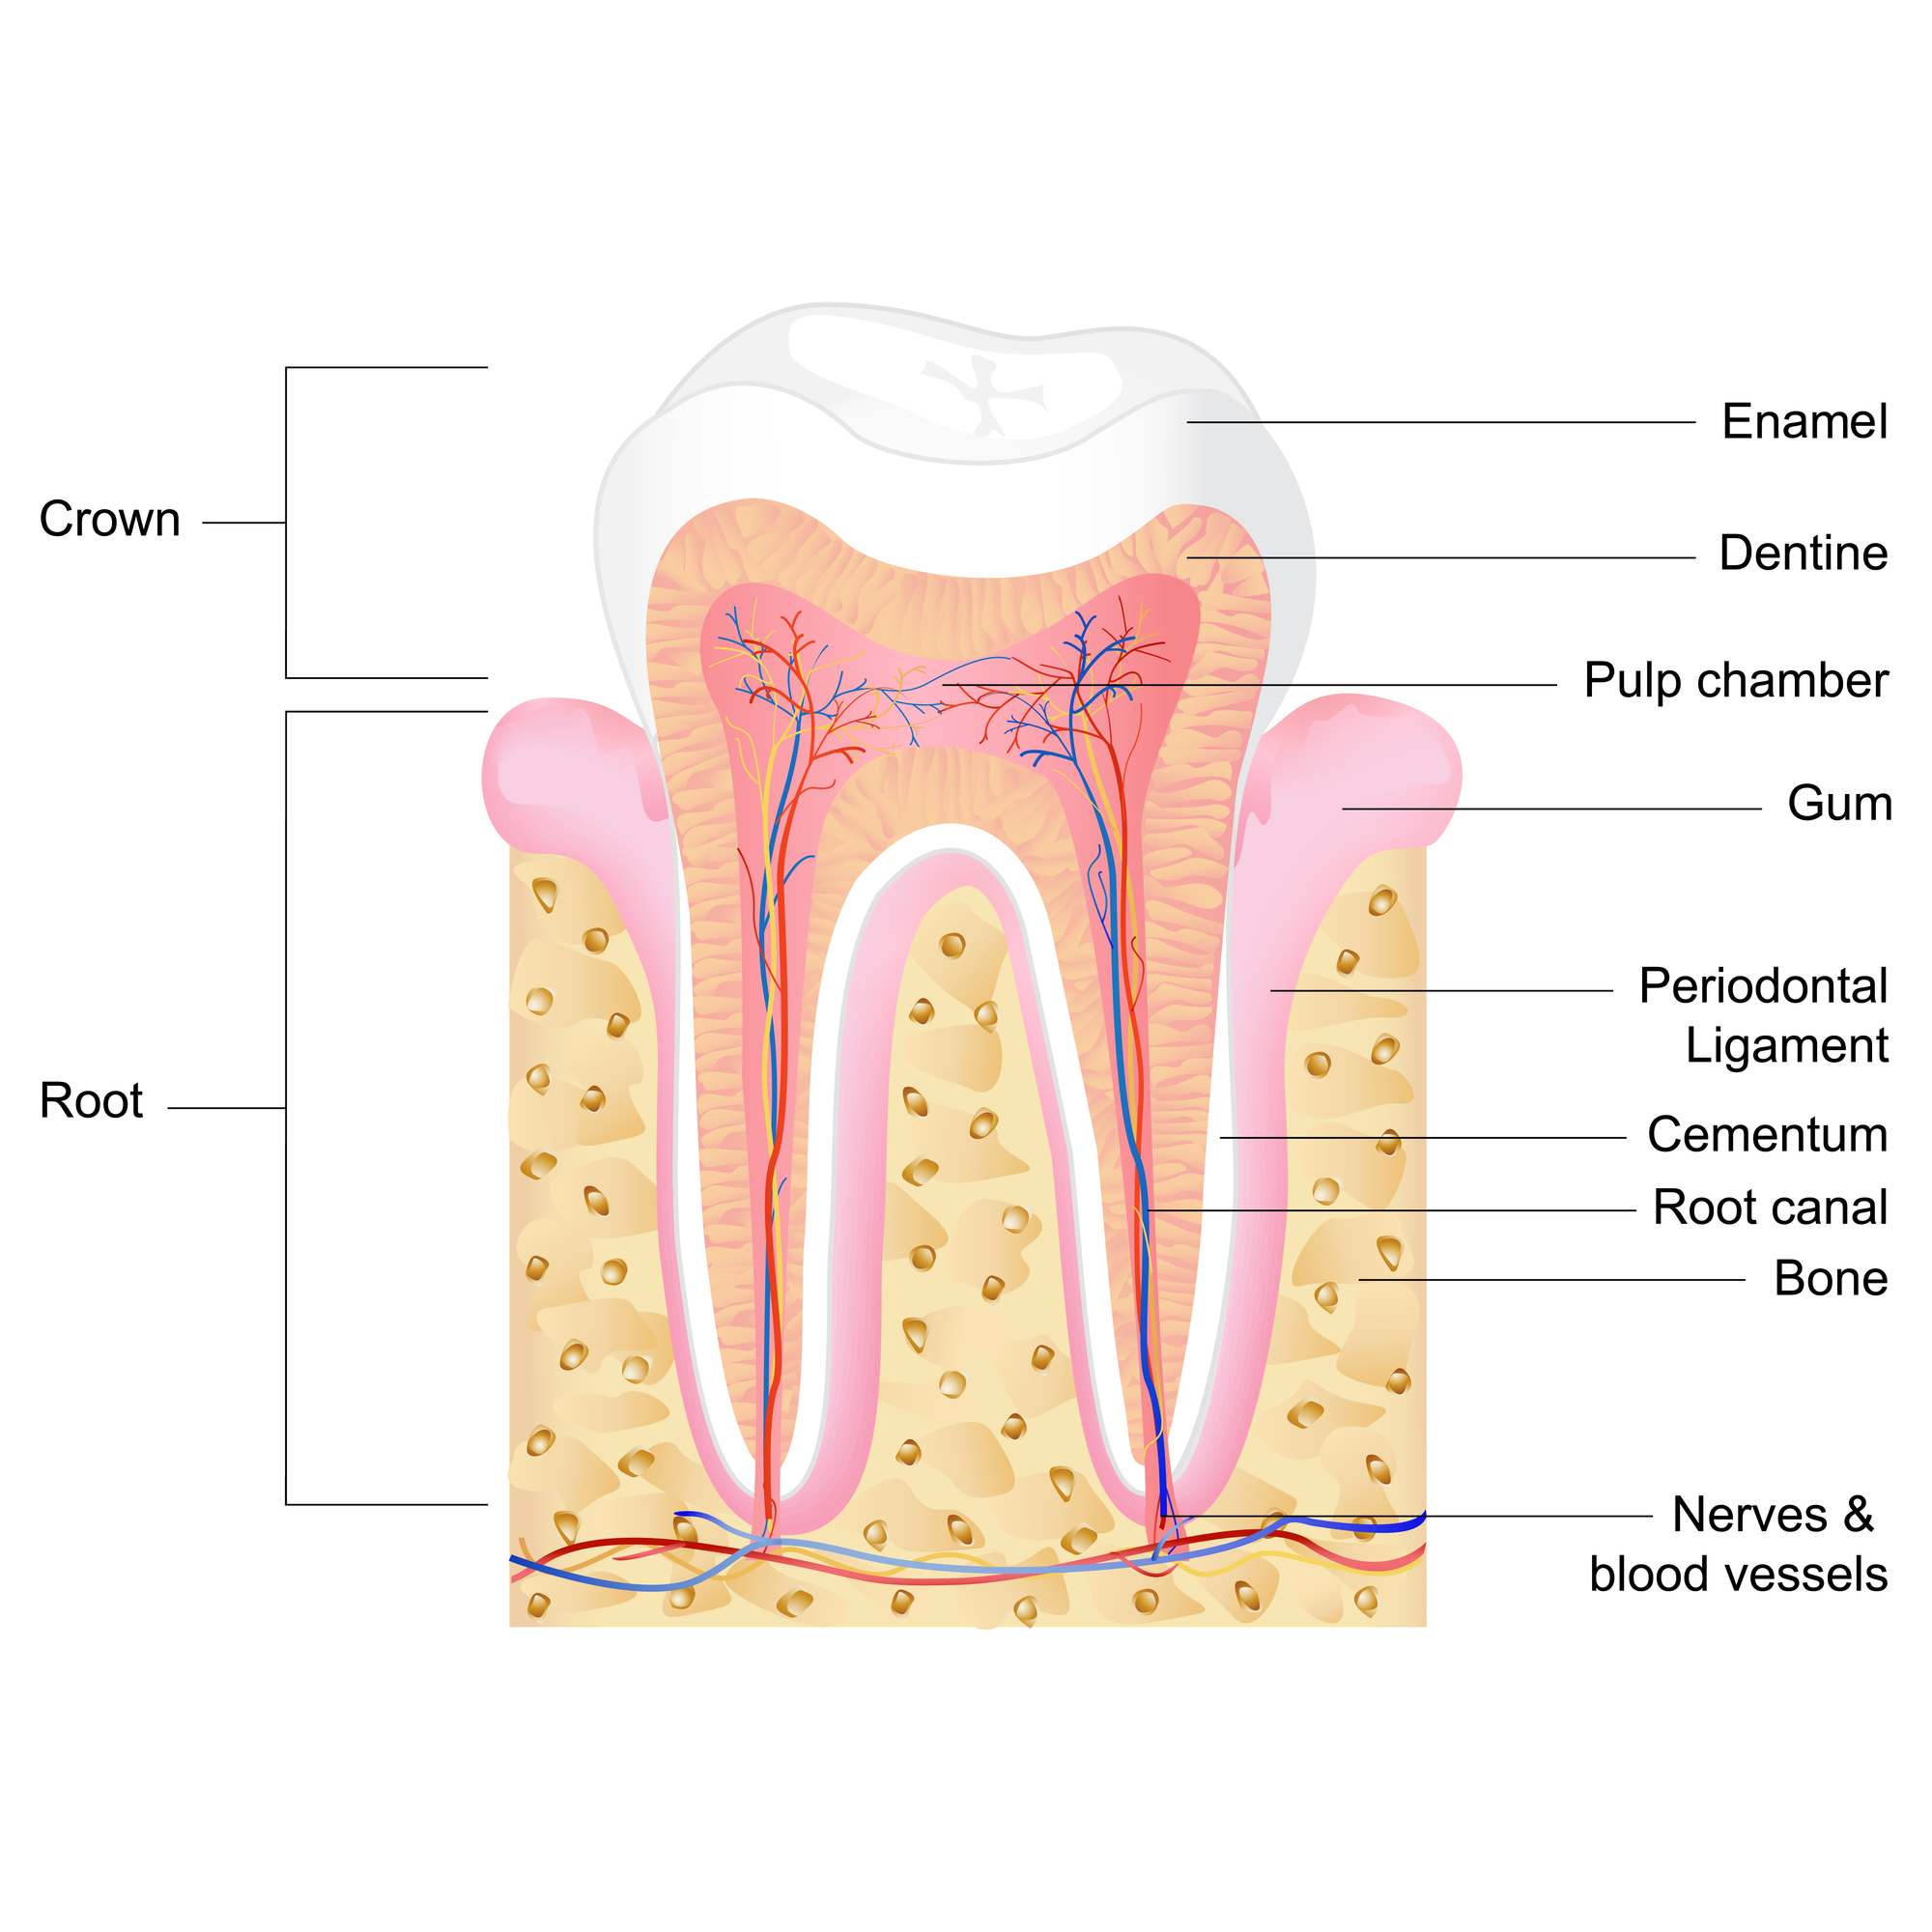 Where can I find the best dentist in West Palm Beach?